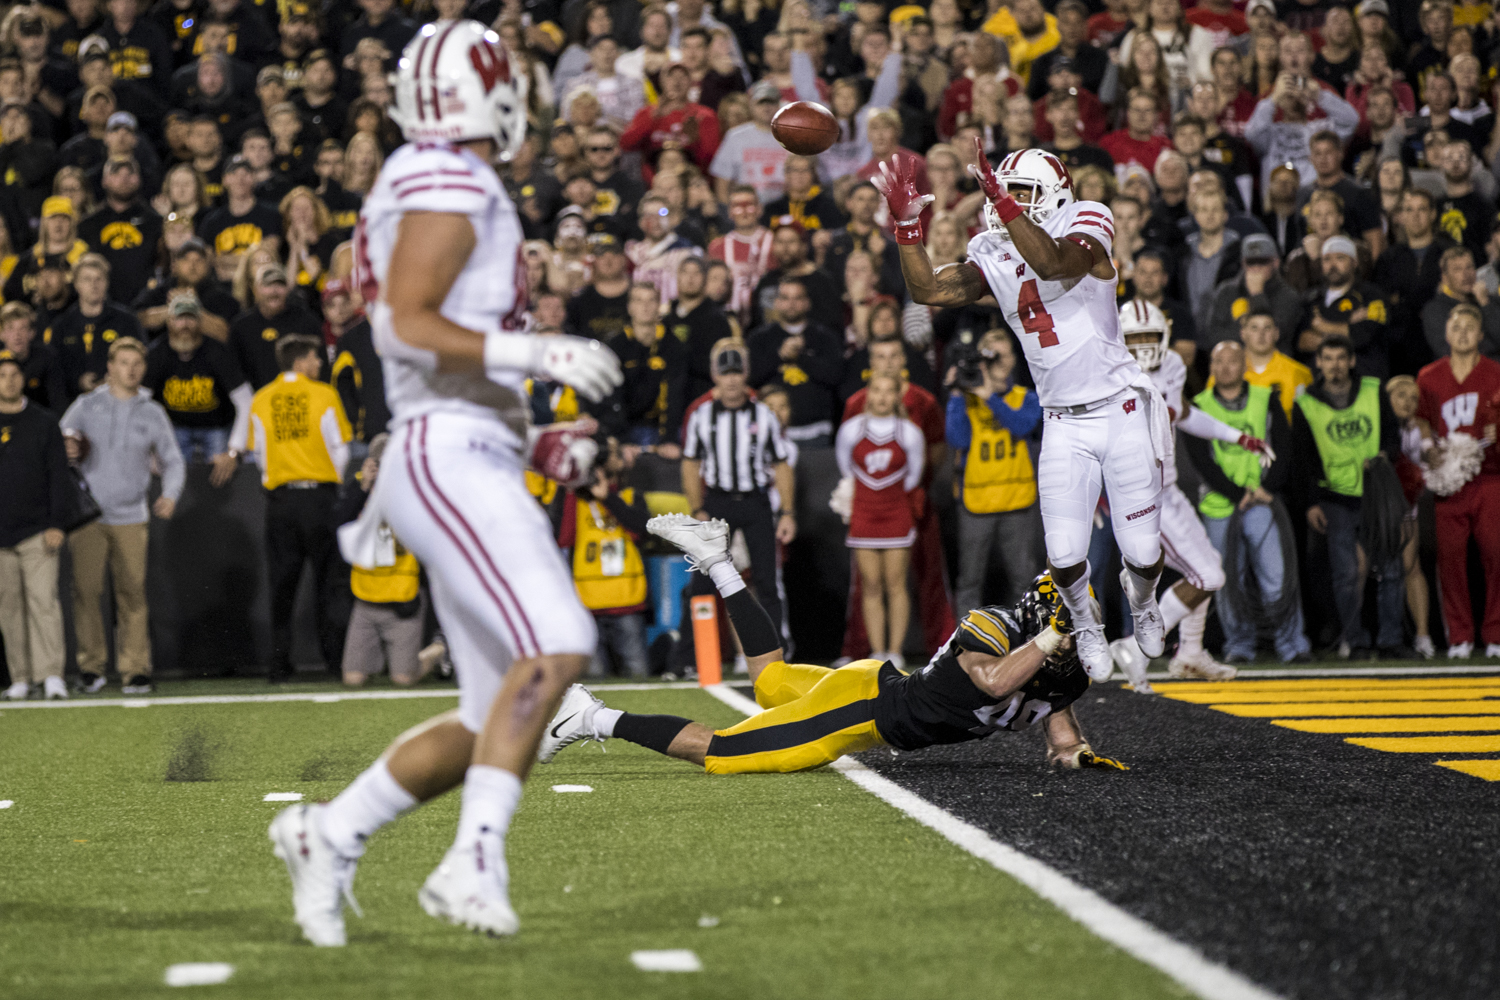 Wisconsin wide receiver A.J. Taylor catches a touchdown pass during Iowa's game against Wisconsin at Kinnick Stadium on Saturday, September 22, 2018. The Badgers defeated the Hawkeyes 28-17.